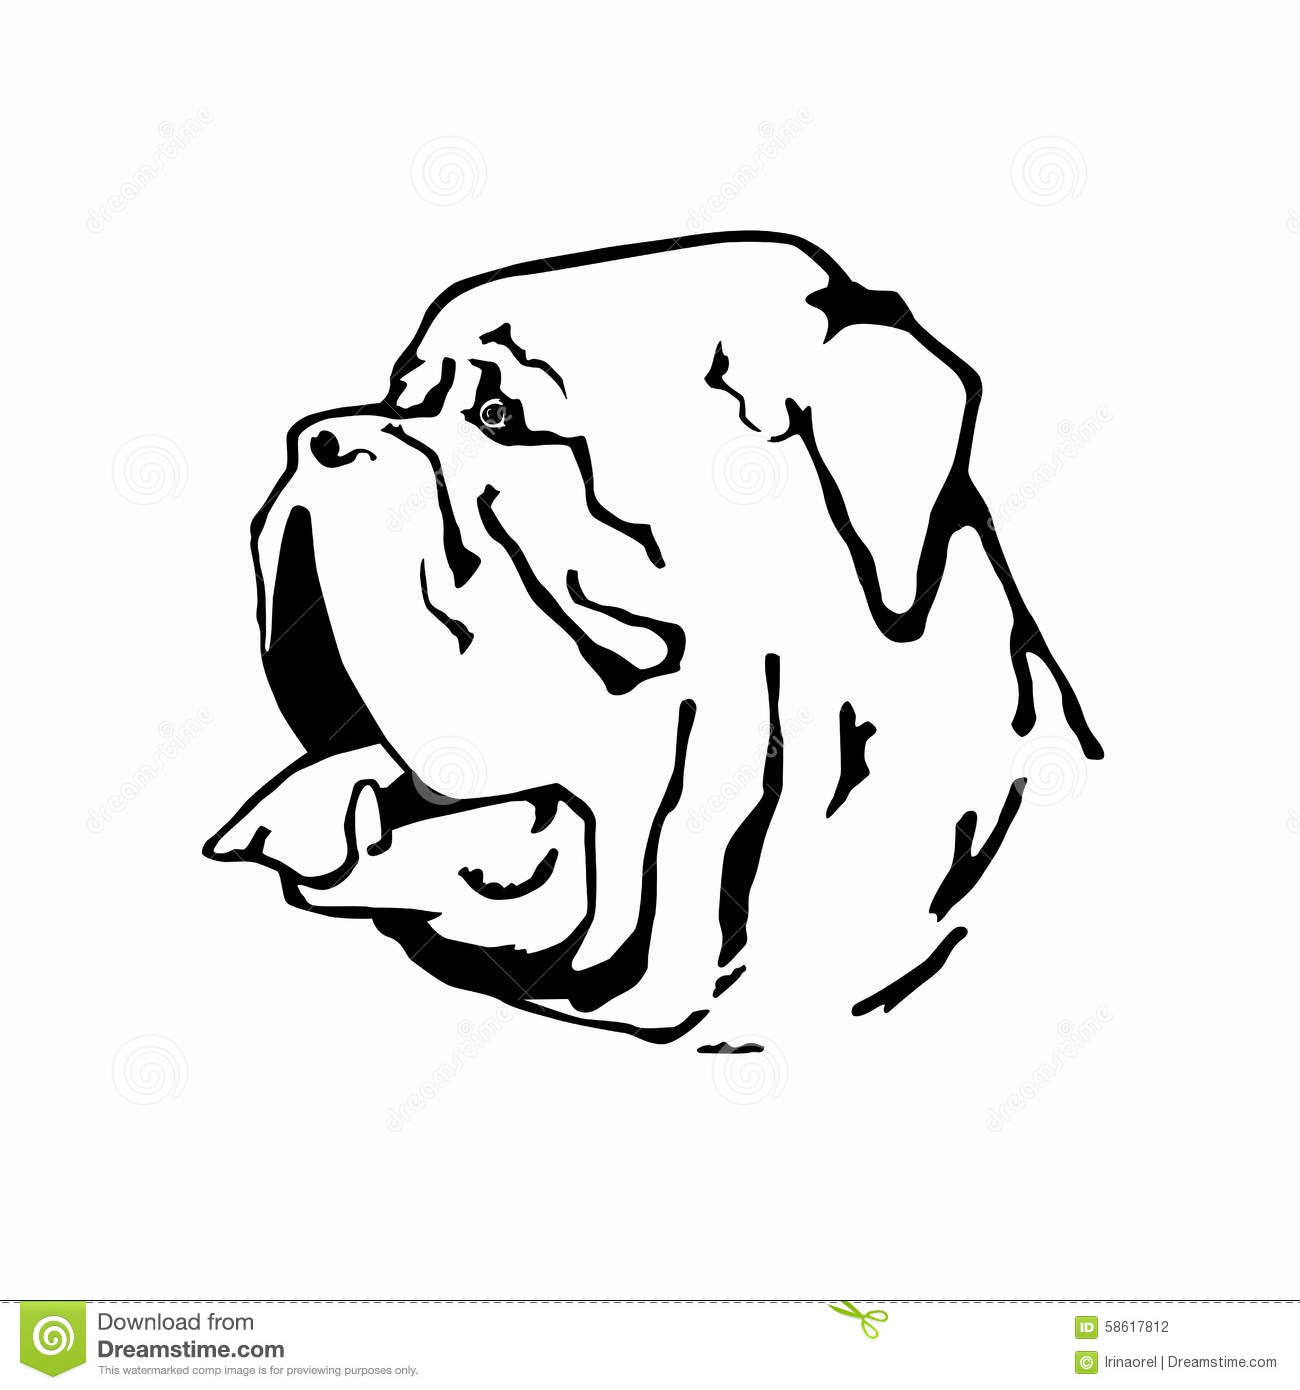 Dogue De Bordeaux clipart #5, Download drawings